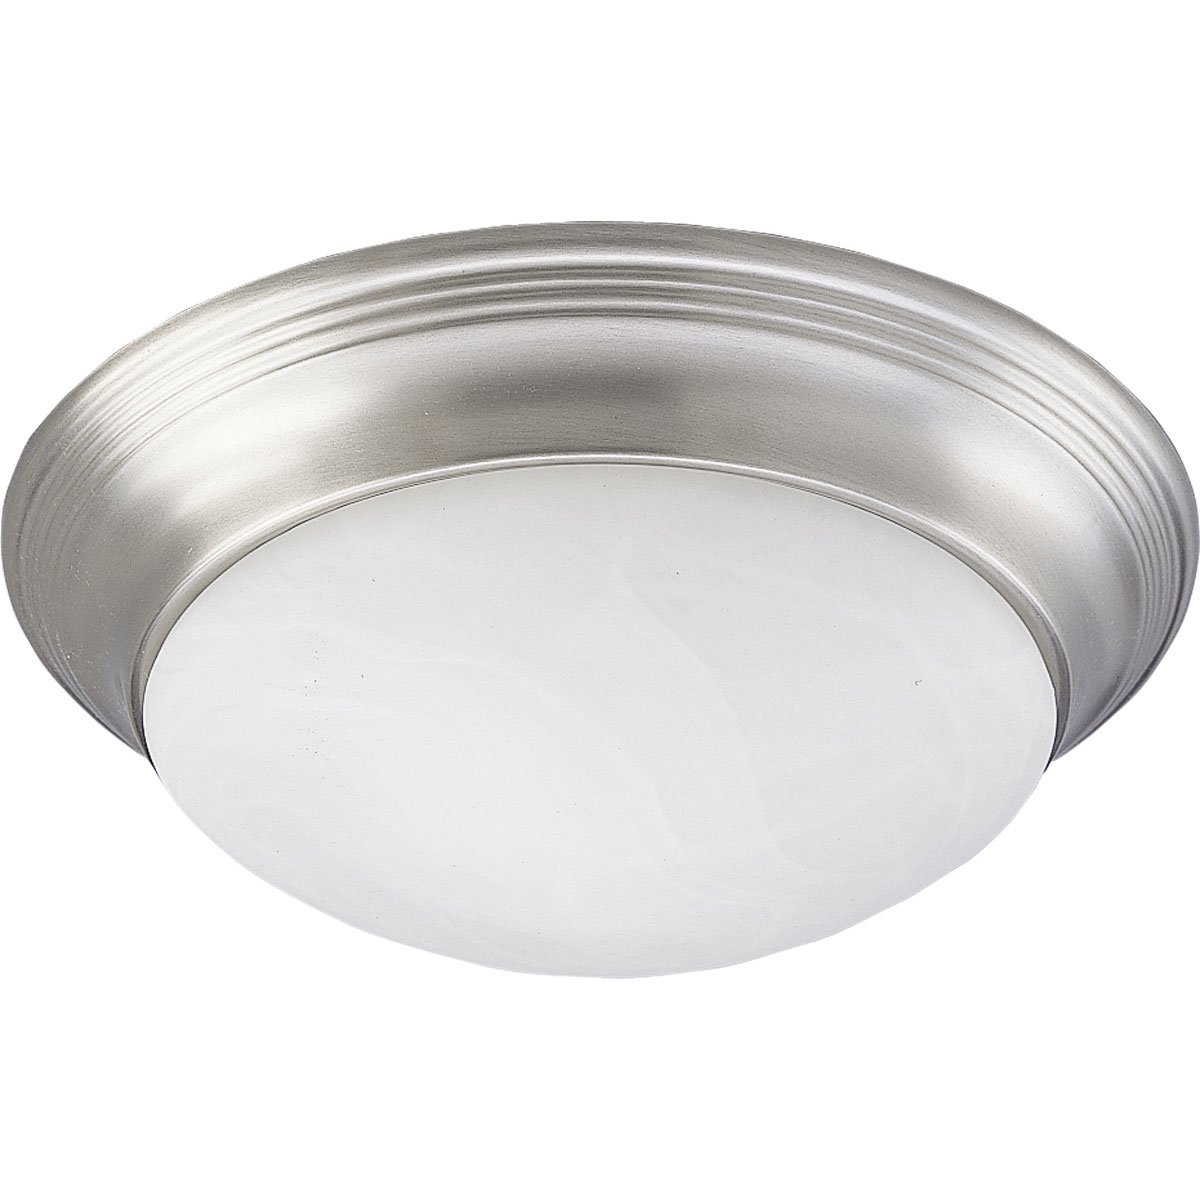 Progress lighting p3688 09 1 light close to ceiling fixture with progress lighting p3688 09 1 light close to ceiling fixture with etched alabaster style twist on glass brushed nickel amazon arubaitofo Gallery